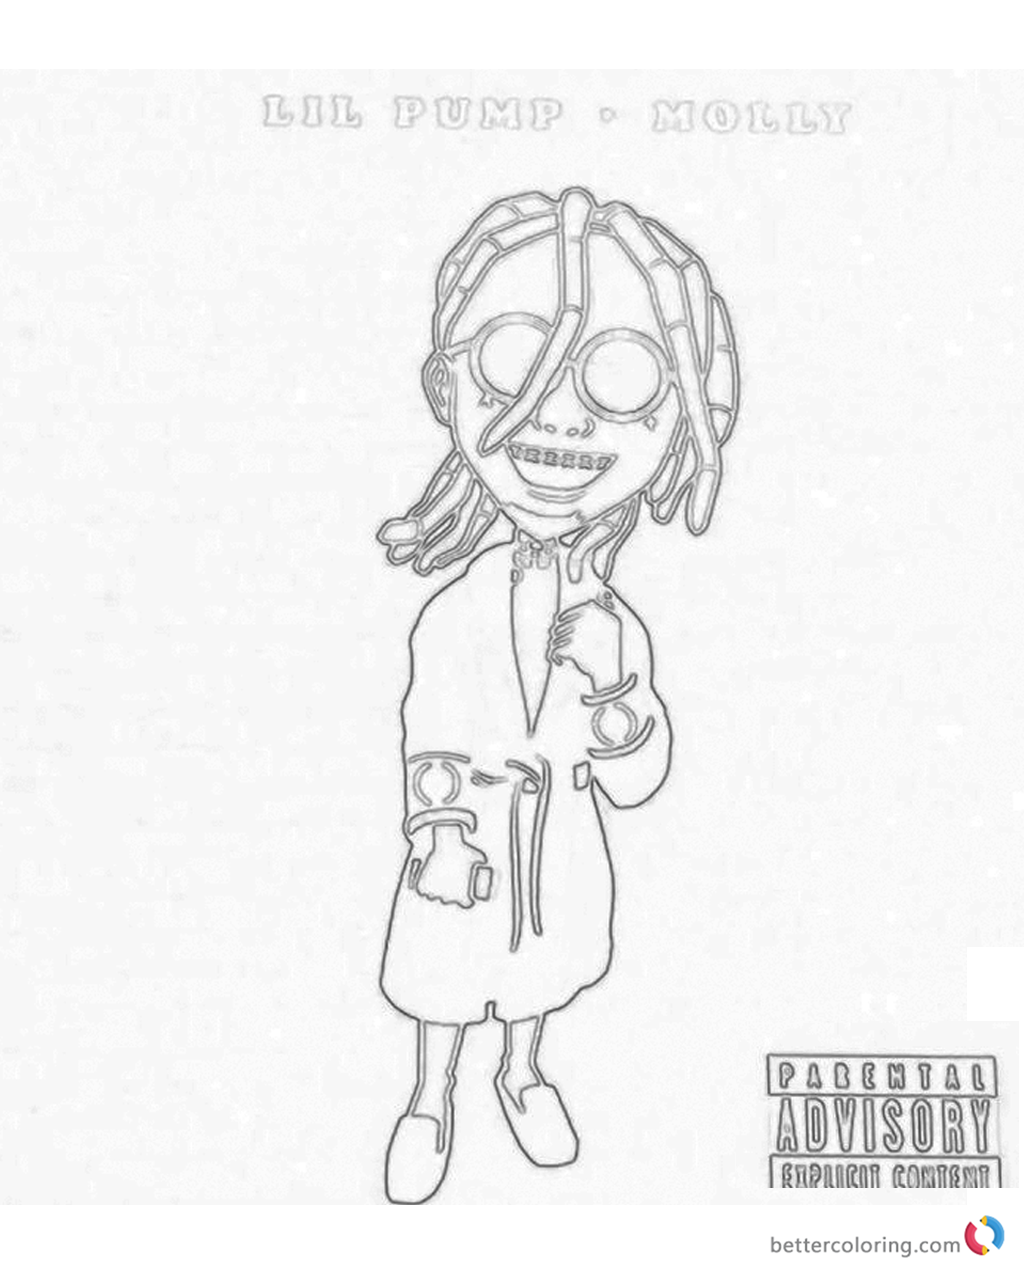 lil pump coloring pages | Lil Pump Coloring Pages Molly - Free Printable Coloring Pages